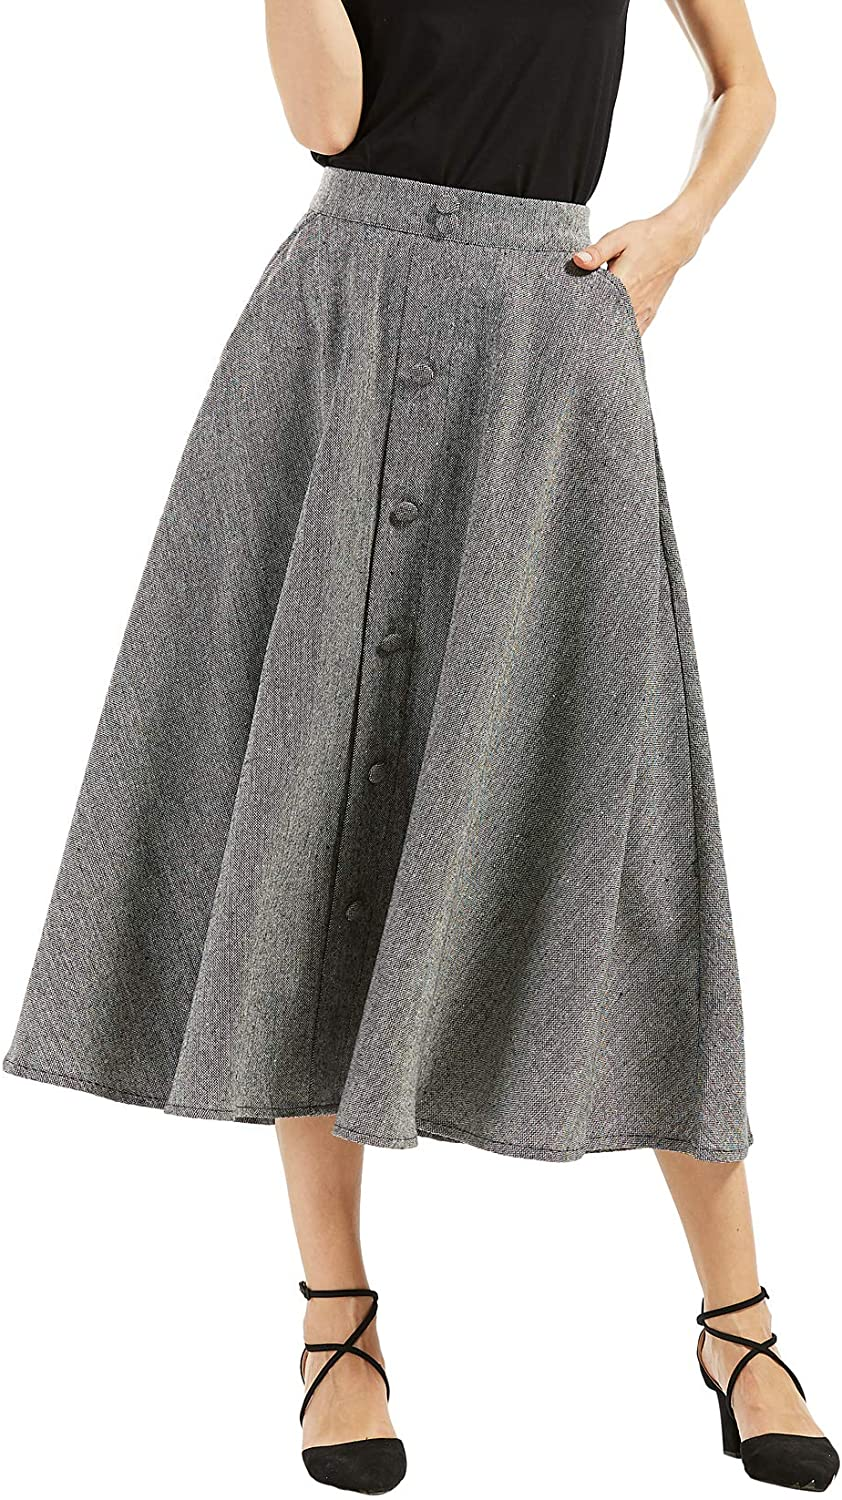 1940s Teenage Fashion: Girls chouyatou Womans Vintage High Waist Front Button Long Skirt with Pockets $35.98 AT vintagedancer.com